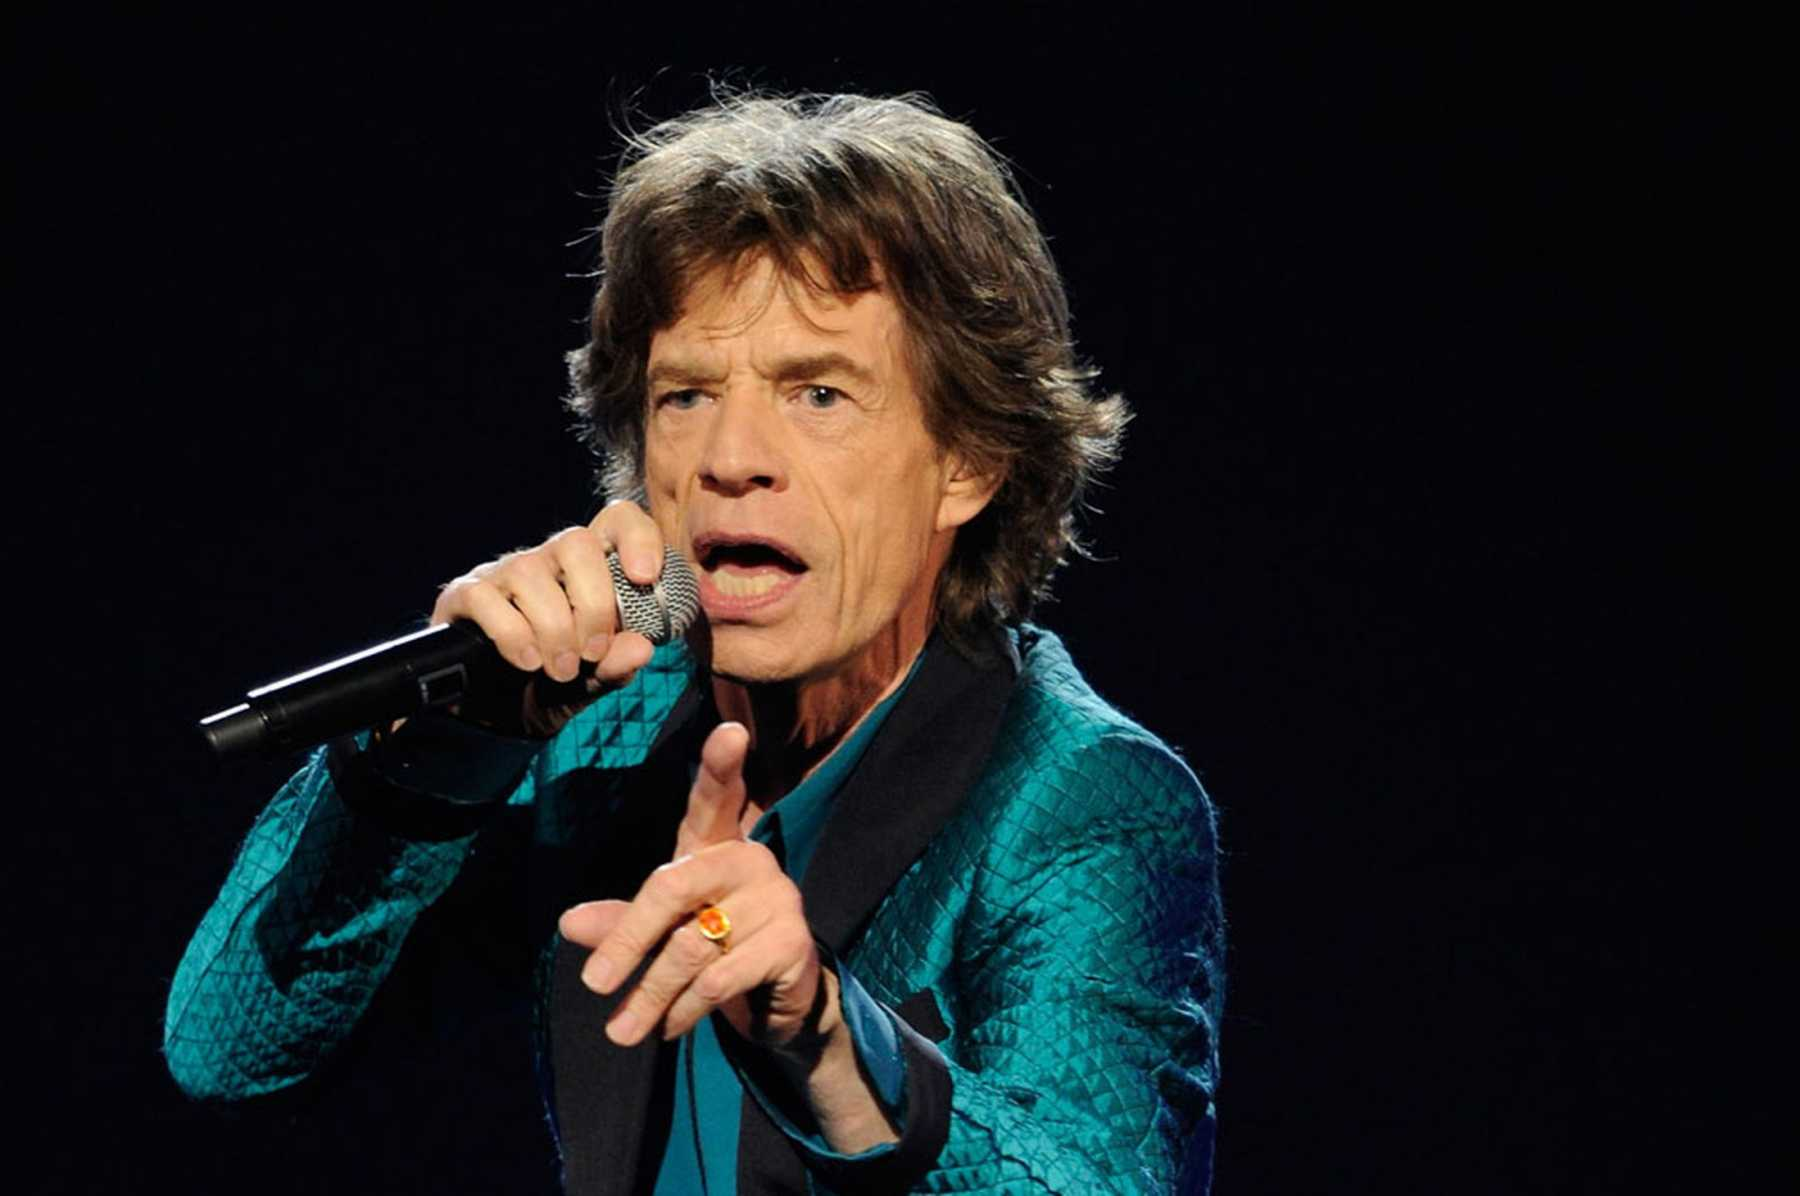 Mick Jagger Is Expecting Baby Number 8 At Age 72 | Mick Jagger